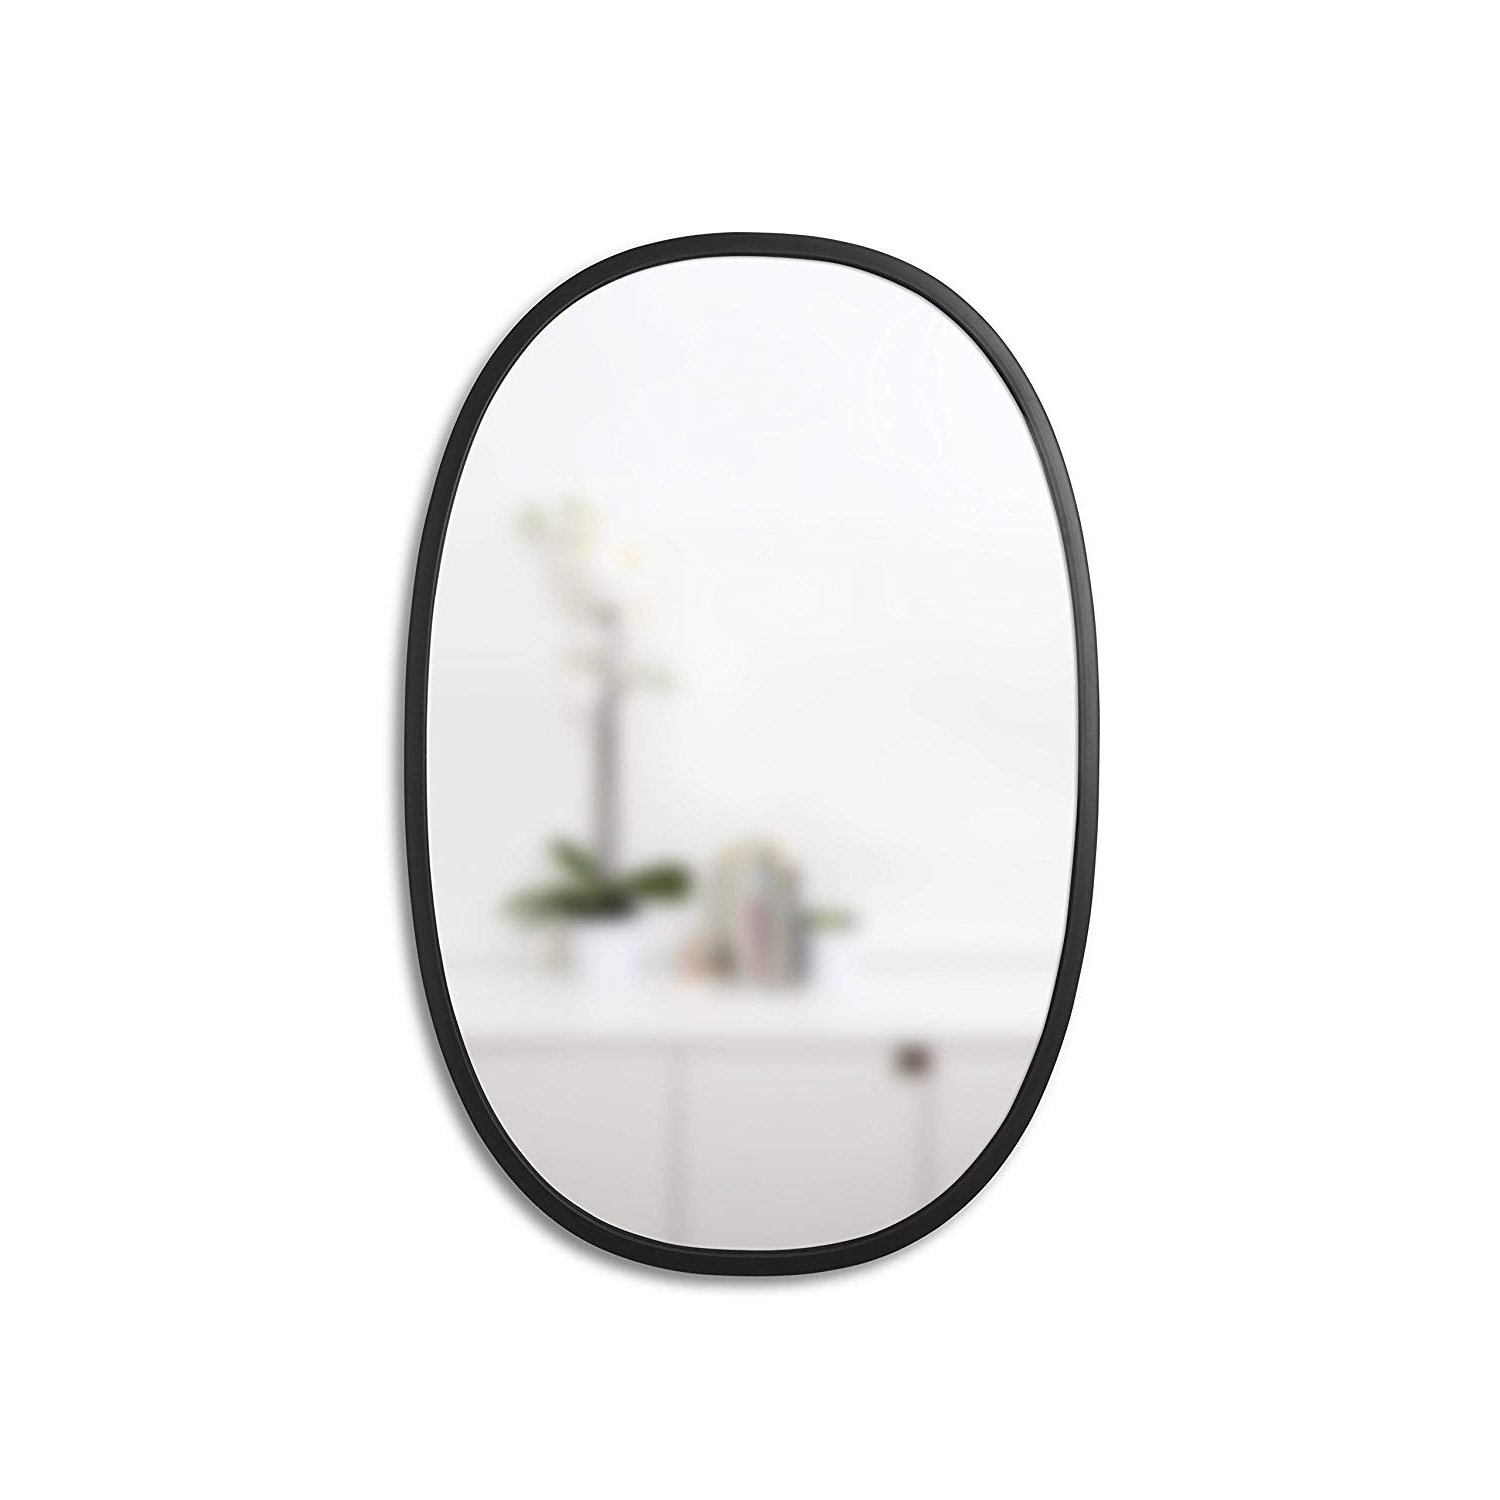 "Umbra Hub 24 X 36"" Oval Wall Mirror With Rubber Frame, Modern Room Decor For Entryways, Washrooms, Living Rooms And More, Black With Fashionable White Oval Wall Mirrors (View 15 of 20)"